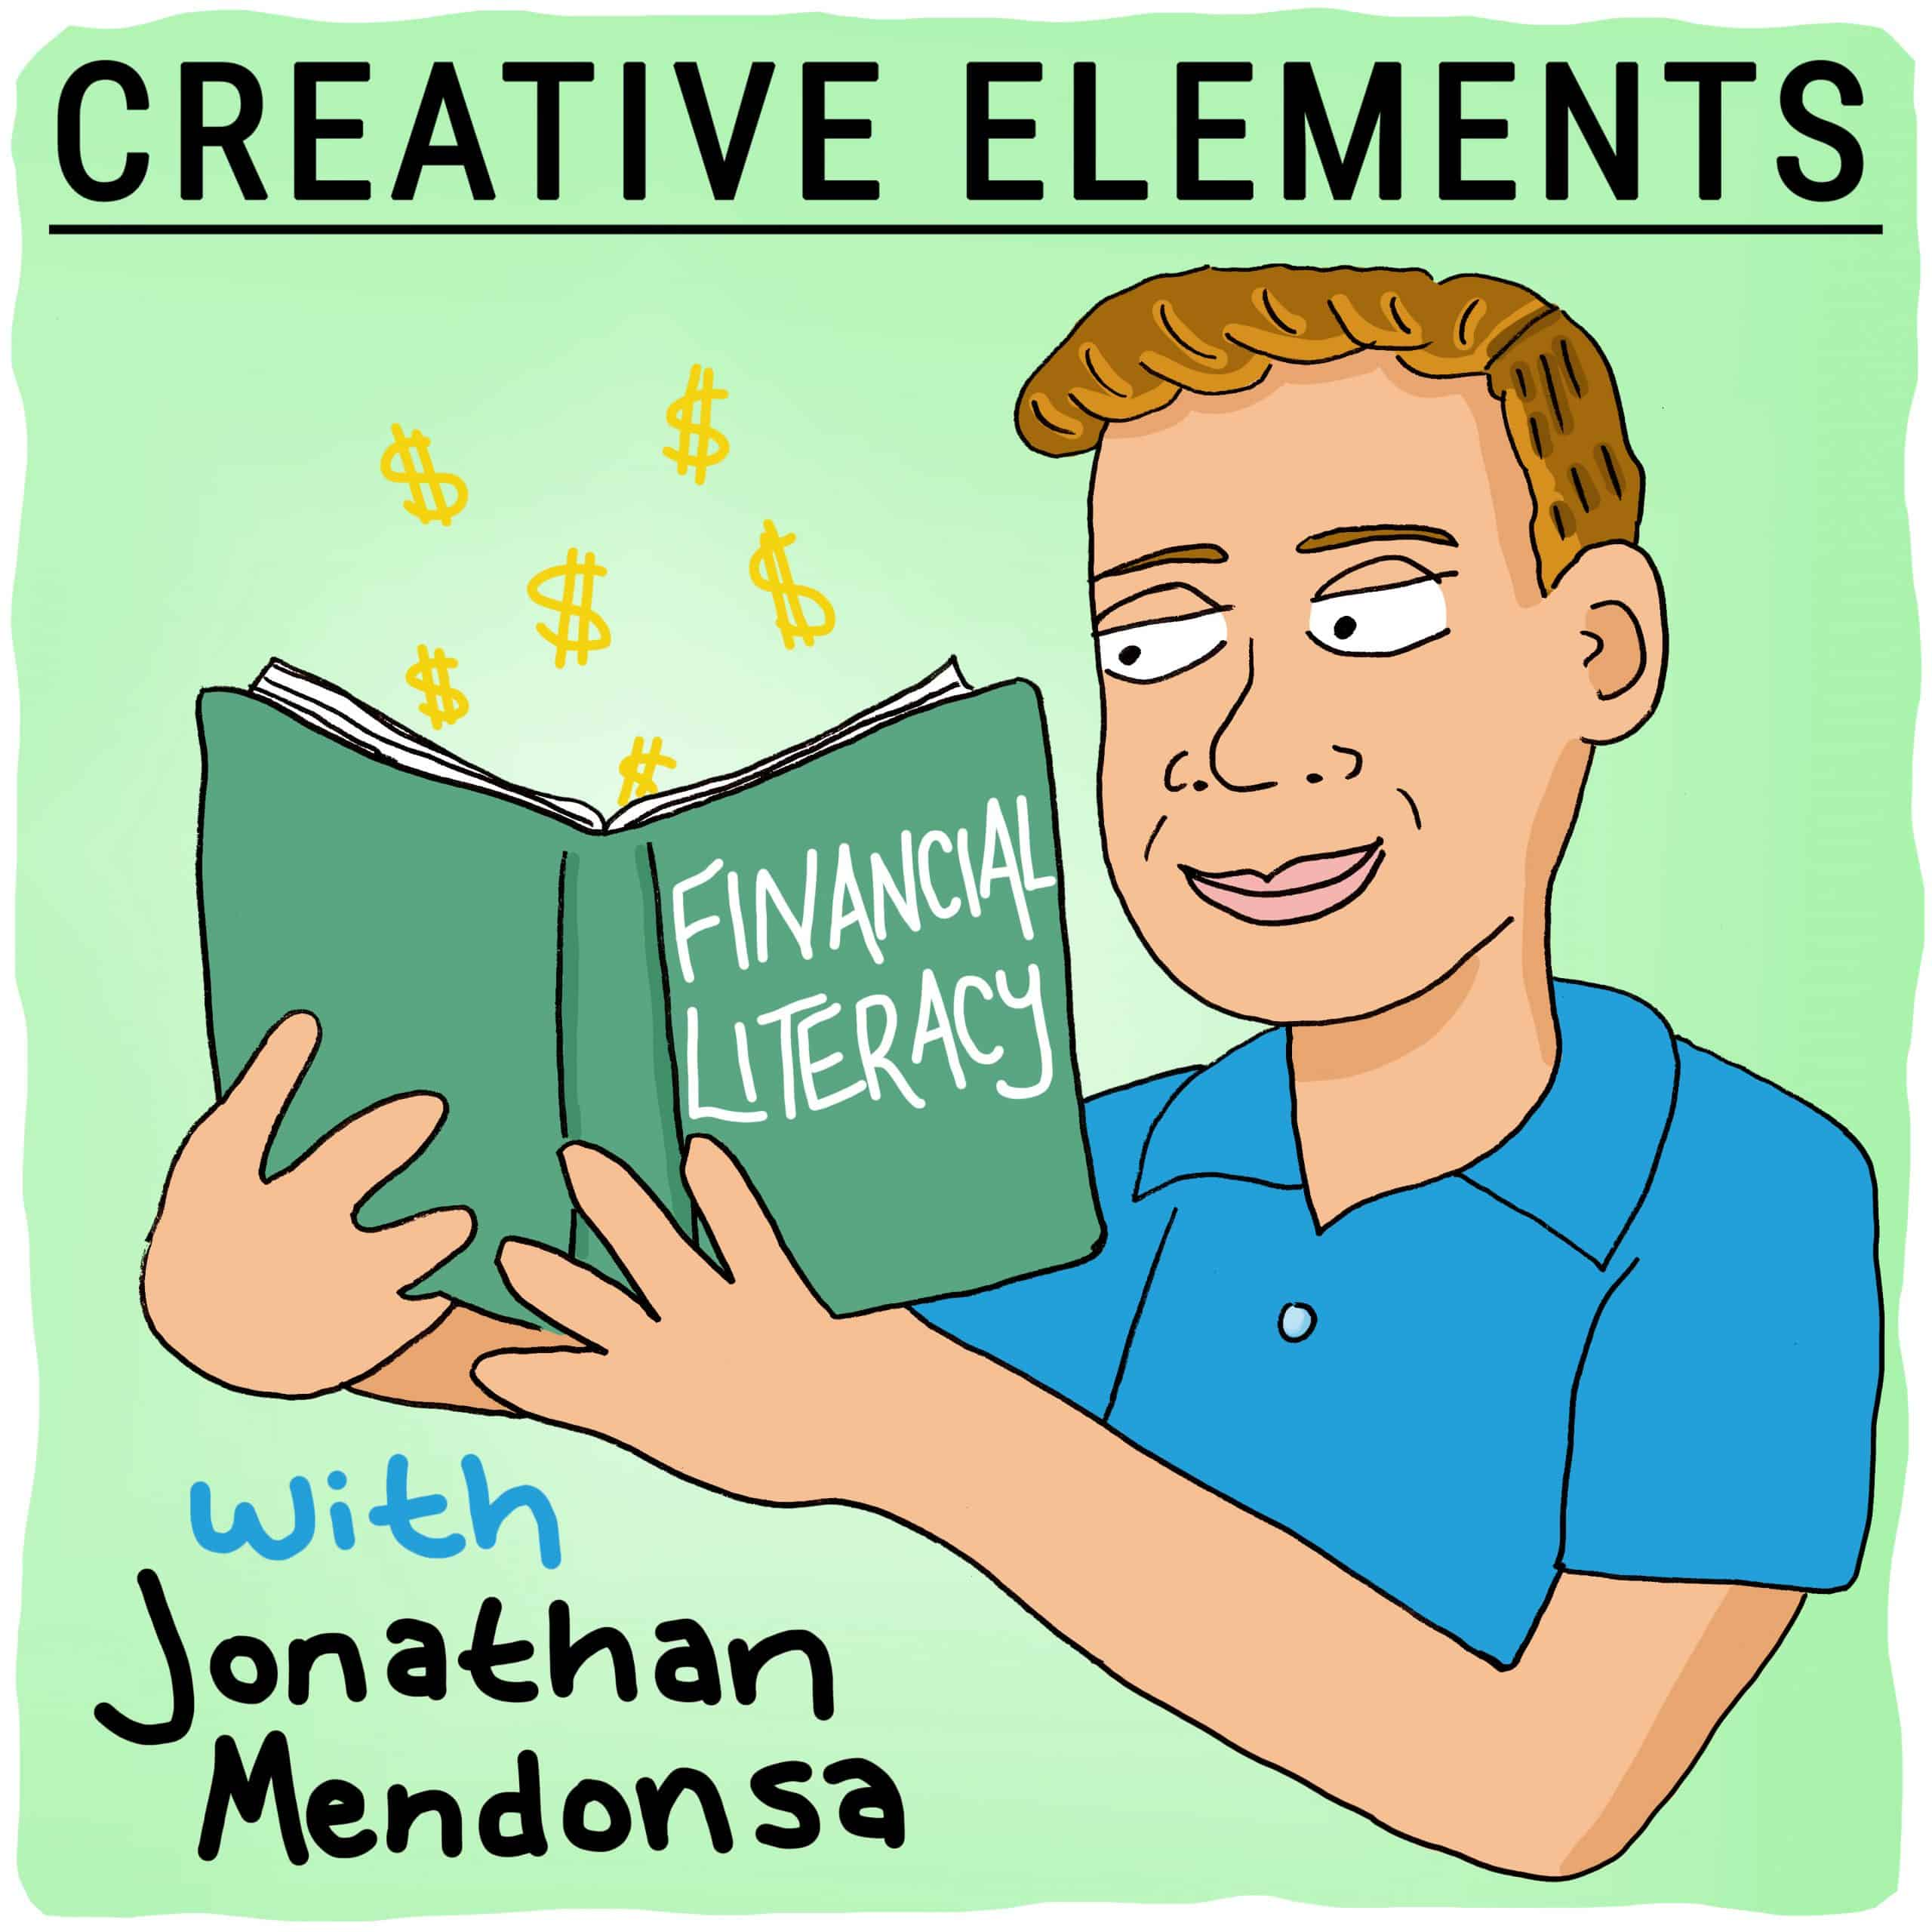 Jonathan Mendonsa on Creative Elements